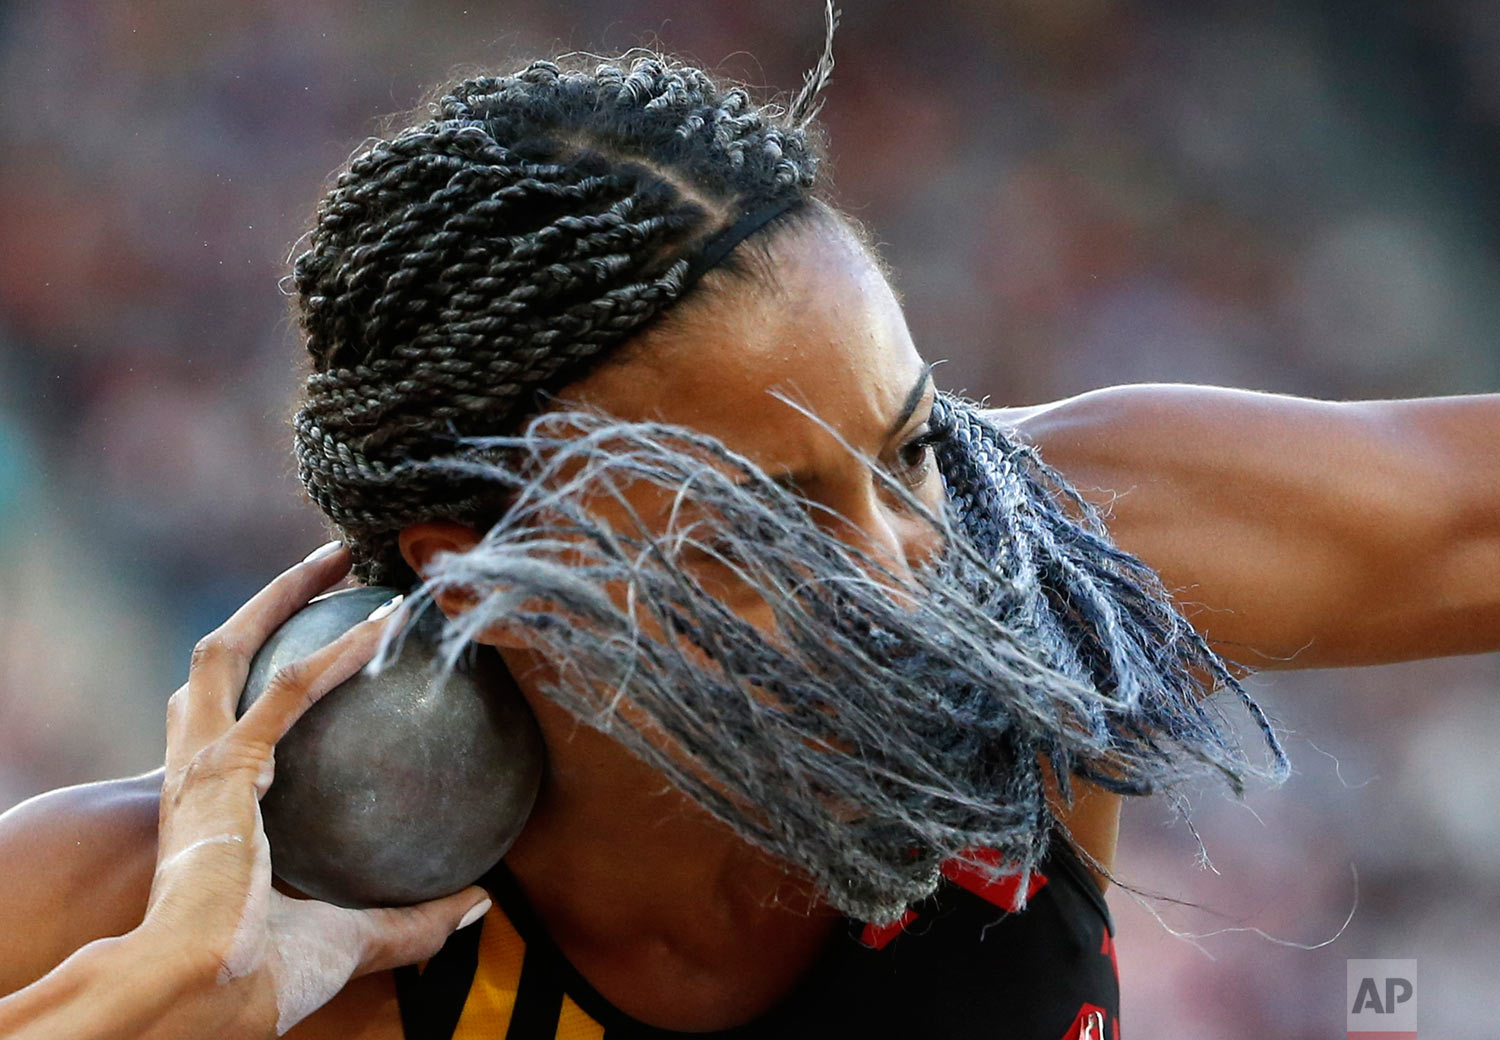 Belgium's Nafissatou Thiam makes an attempt in the shot put of the heptathlon during the World Athletics Championships in London Saturday, Aug. 5, 2017. (AP Photo/Matthias Schrader)